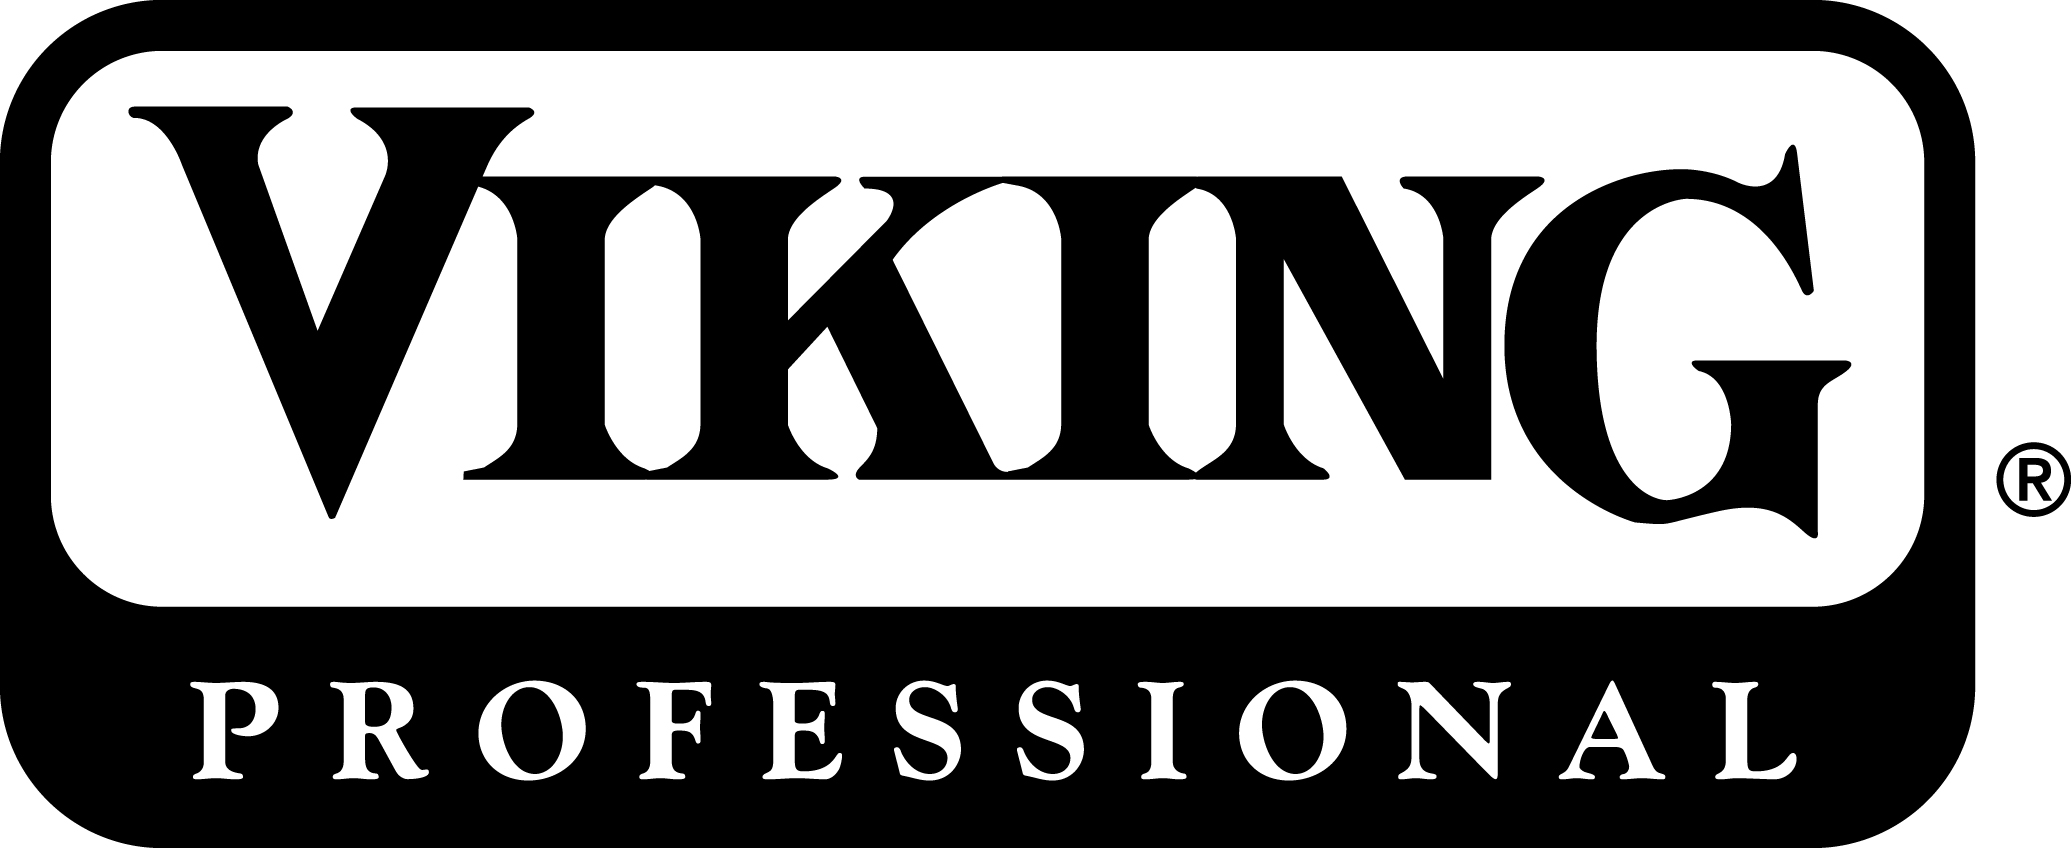 Viking Oven Technician, Whirlpool Oven Repair